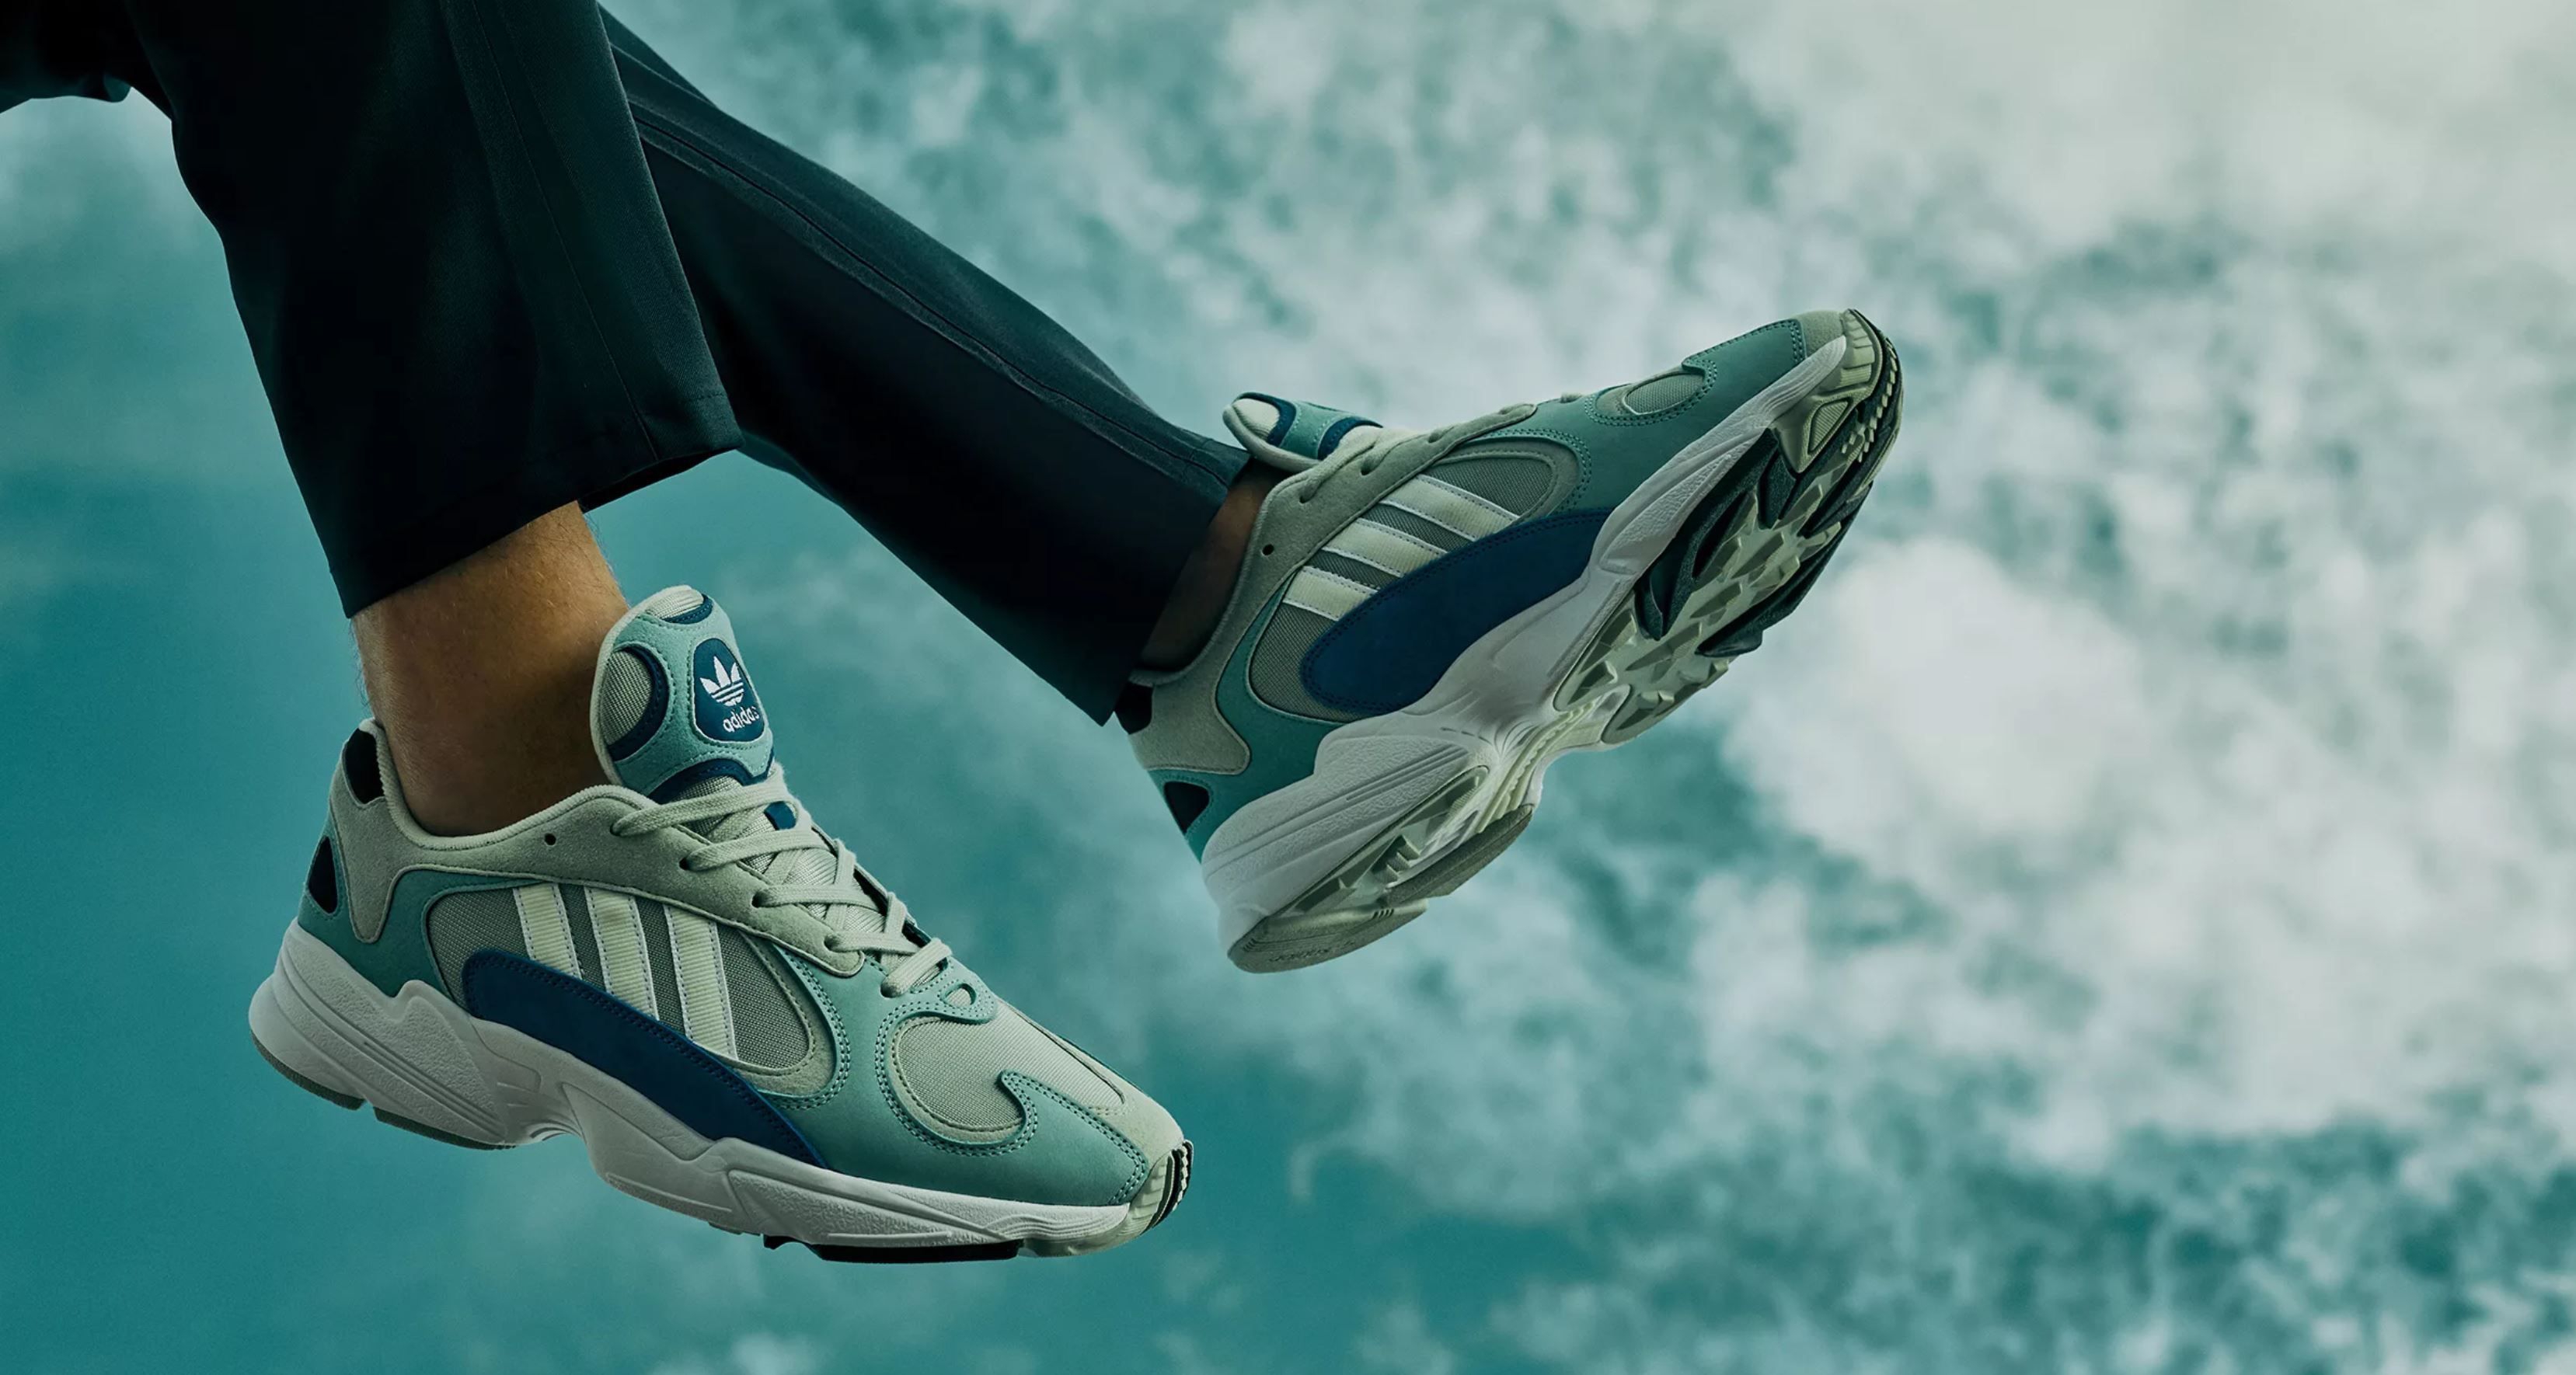 END Clothing's adidas Yung 1 'Atmosphere' Draw is Now Open